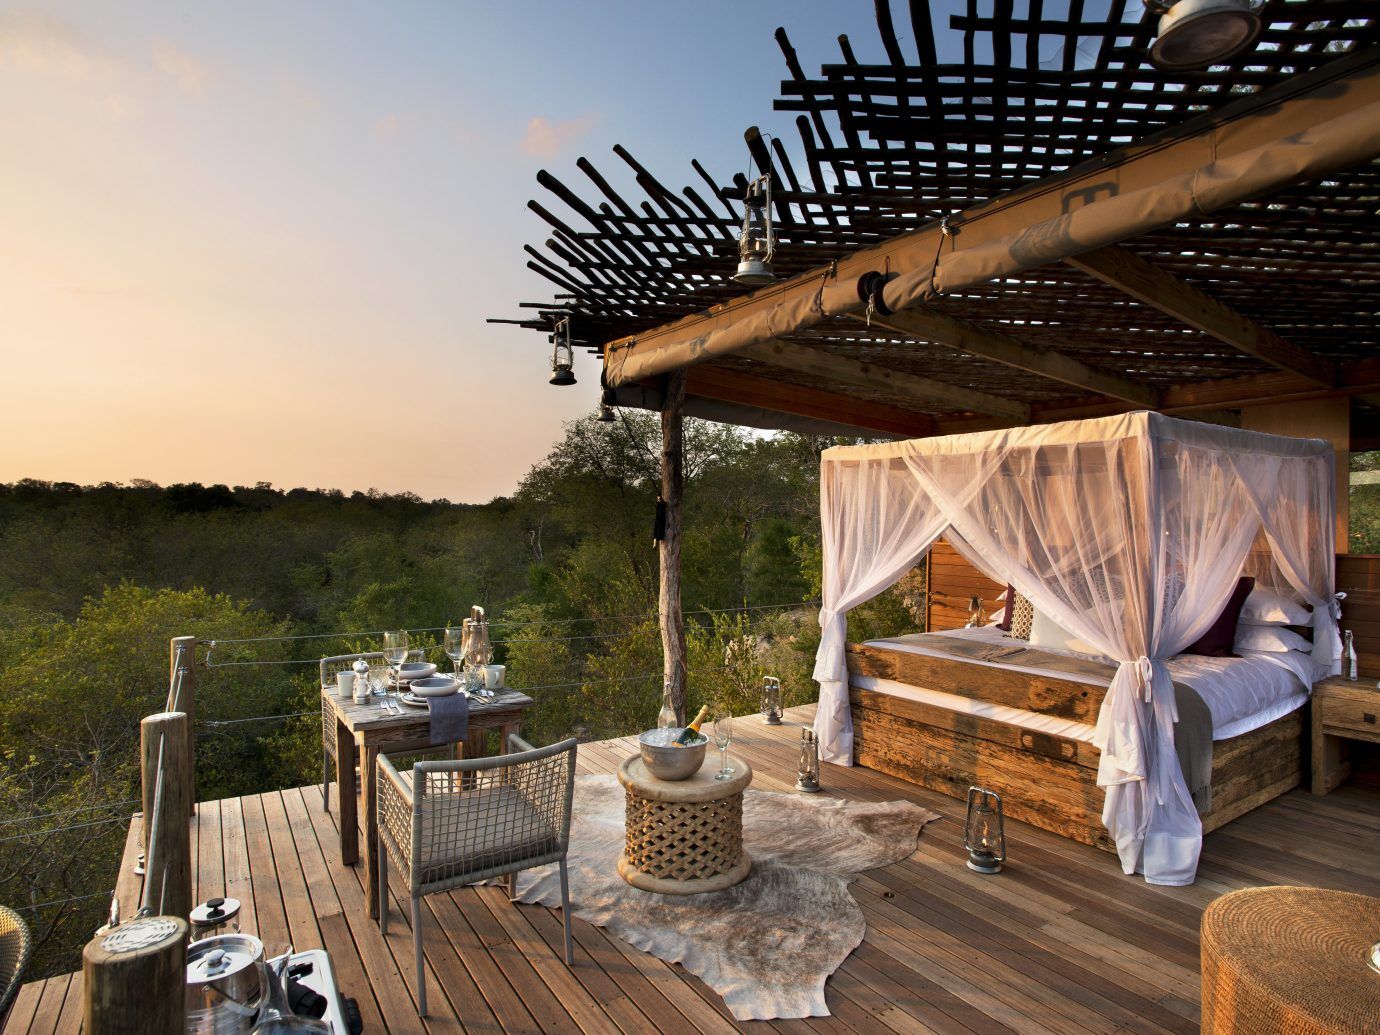 Deck Hotels Living Lounge Scenic views Trip Ideas estate vacation home outdoor structure wood Villa Resort backyard cottage log cabin area furniture